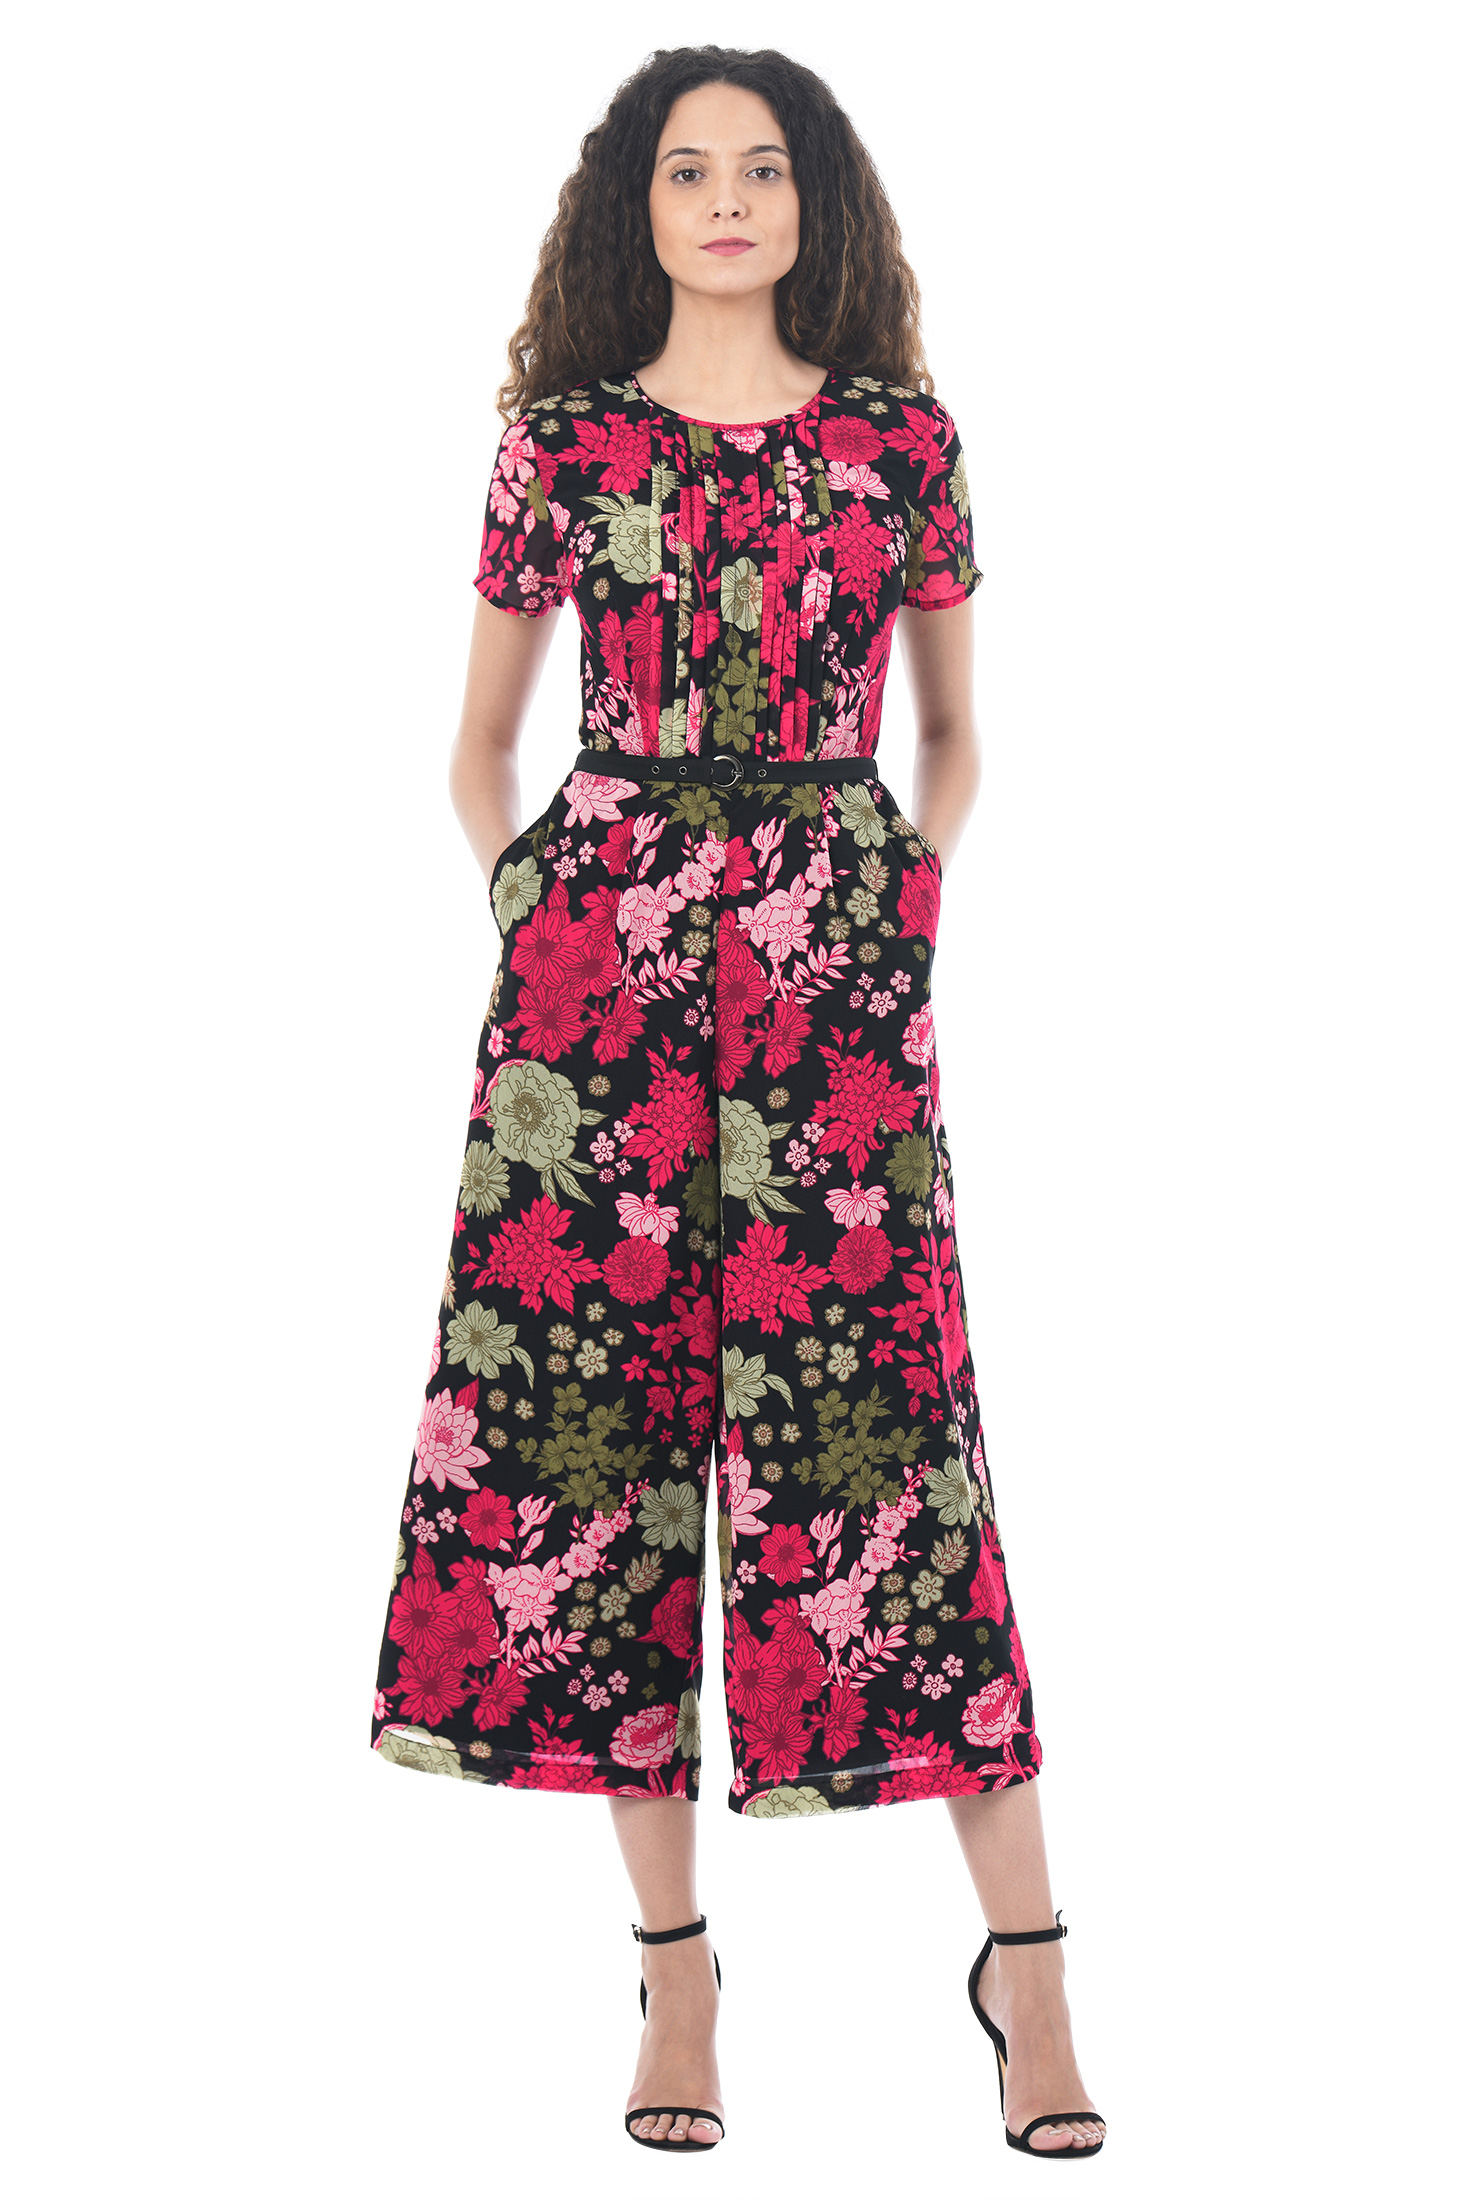 d066d4a1271 Women s Fashion Clothing 0-36W and Custom